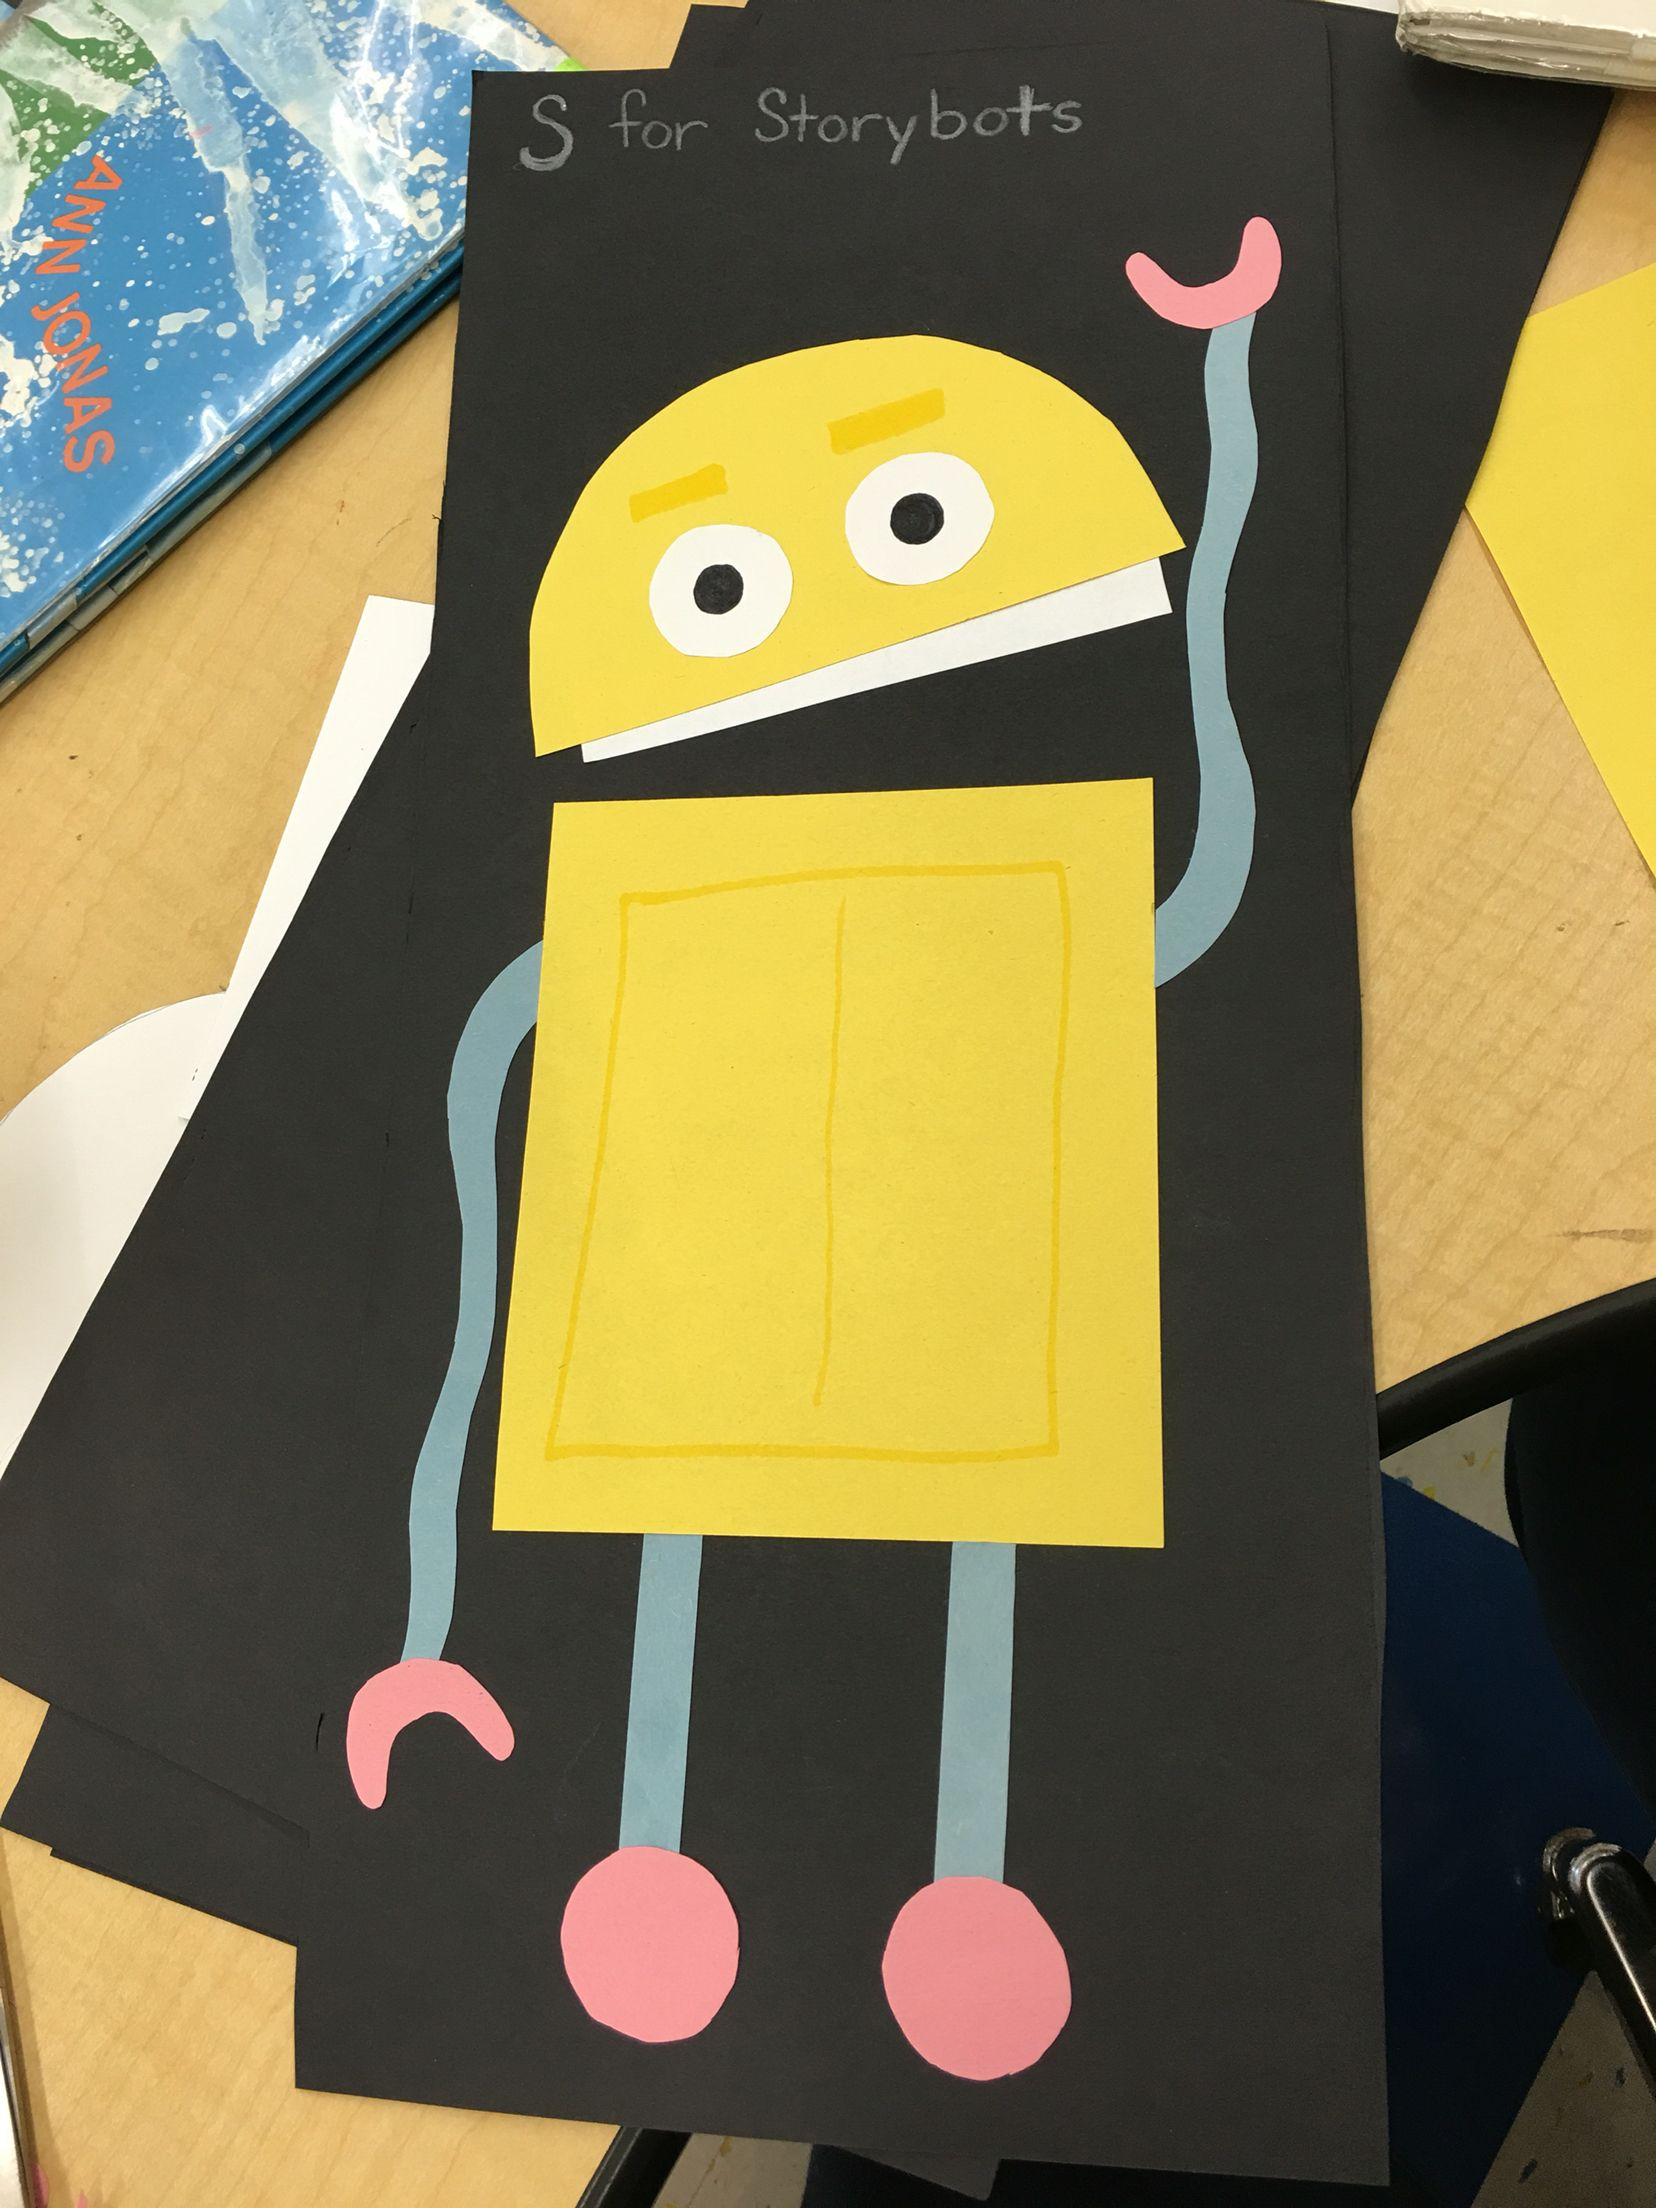 Storybot Craft For Letter S Fine Motor Skills With